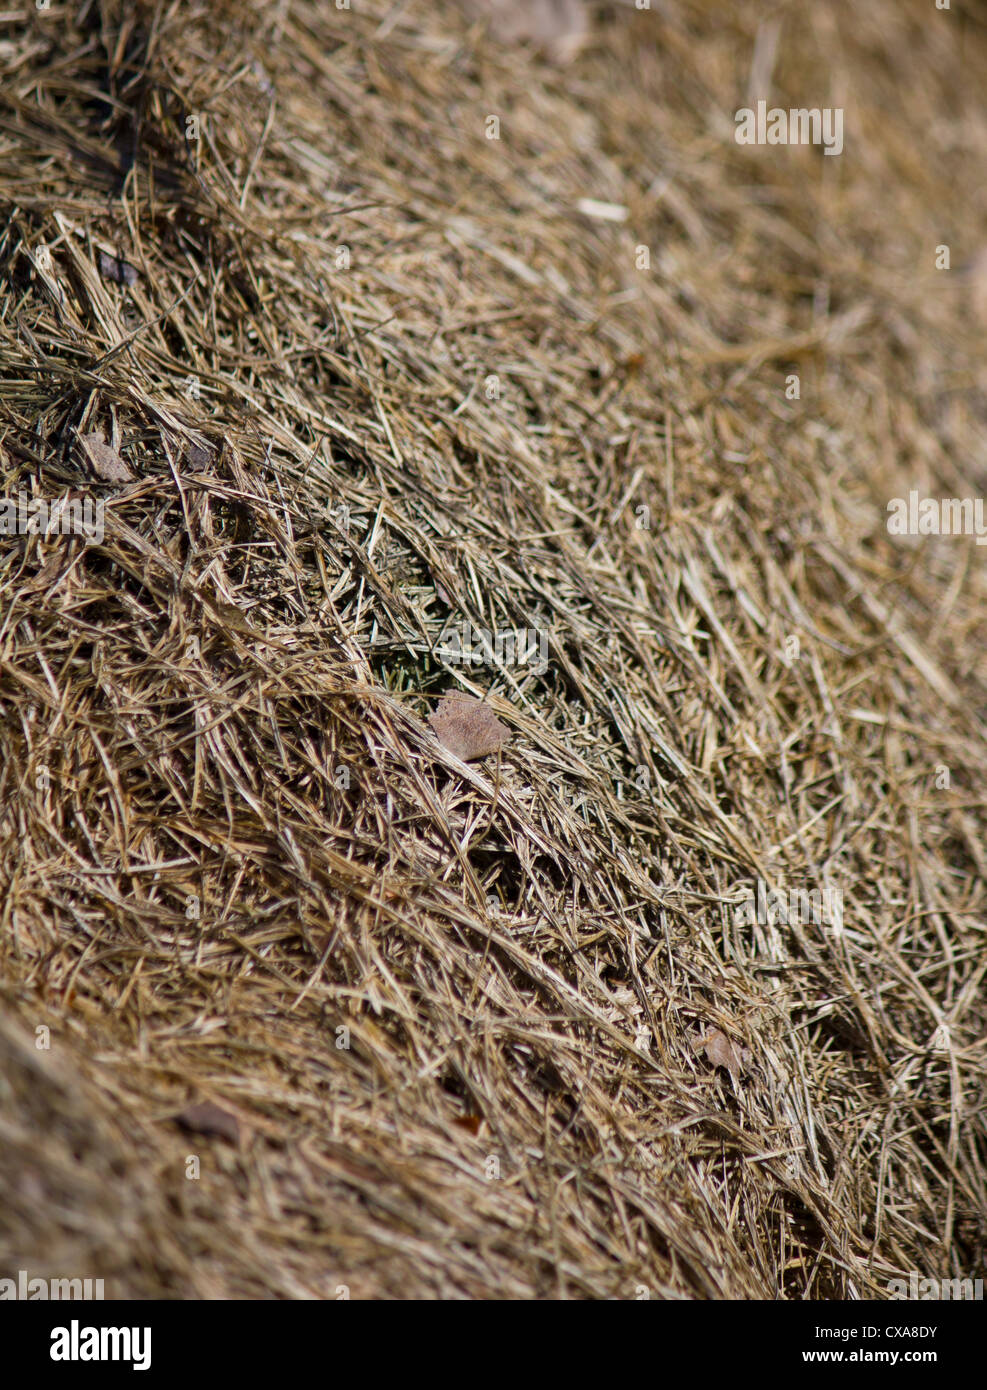 Autumnal / autumn image Straw pile with a single leaf in the middle, muted tones slowly composting - Stock Image